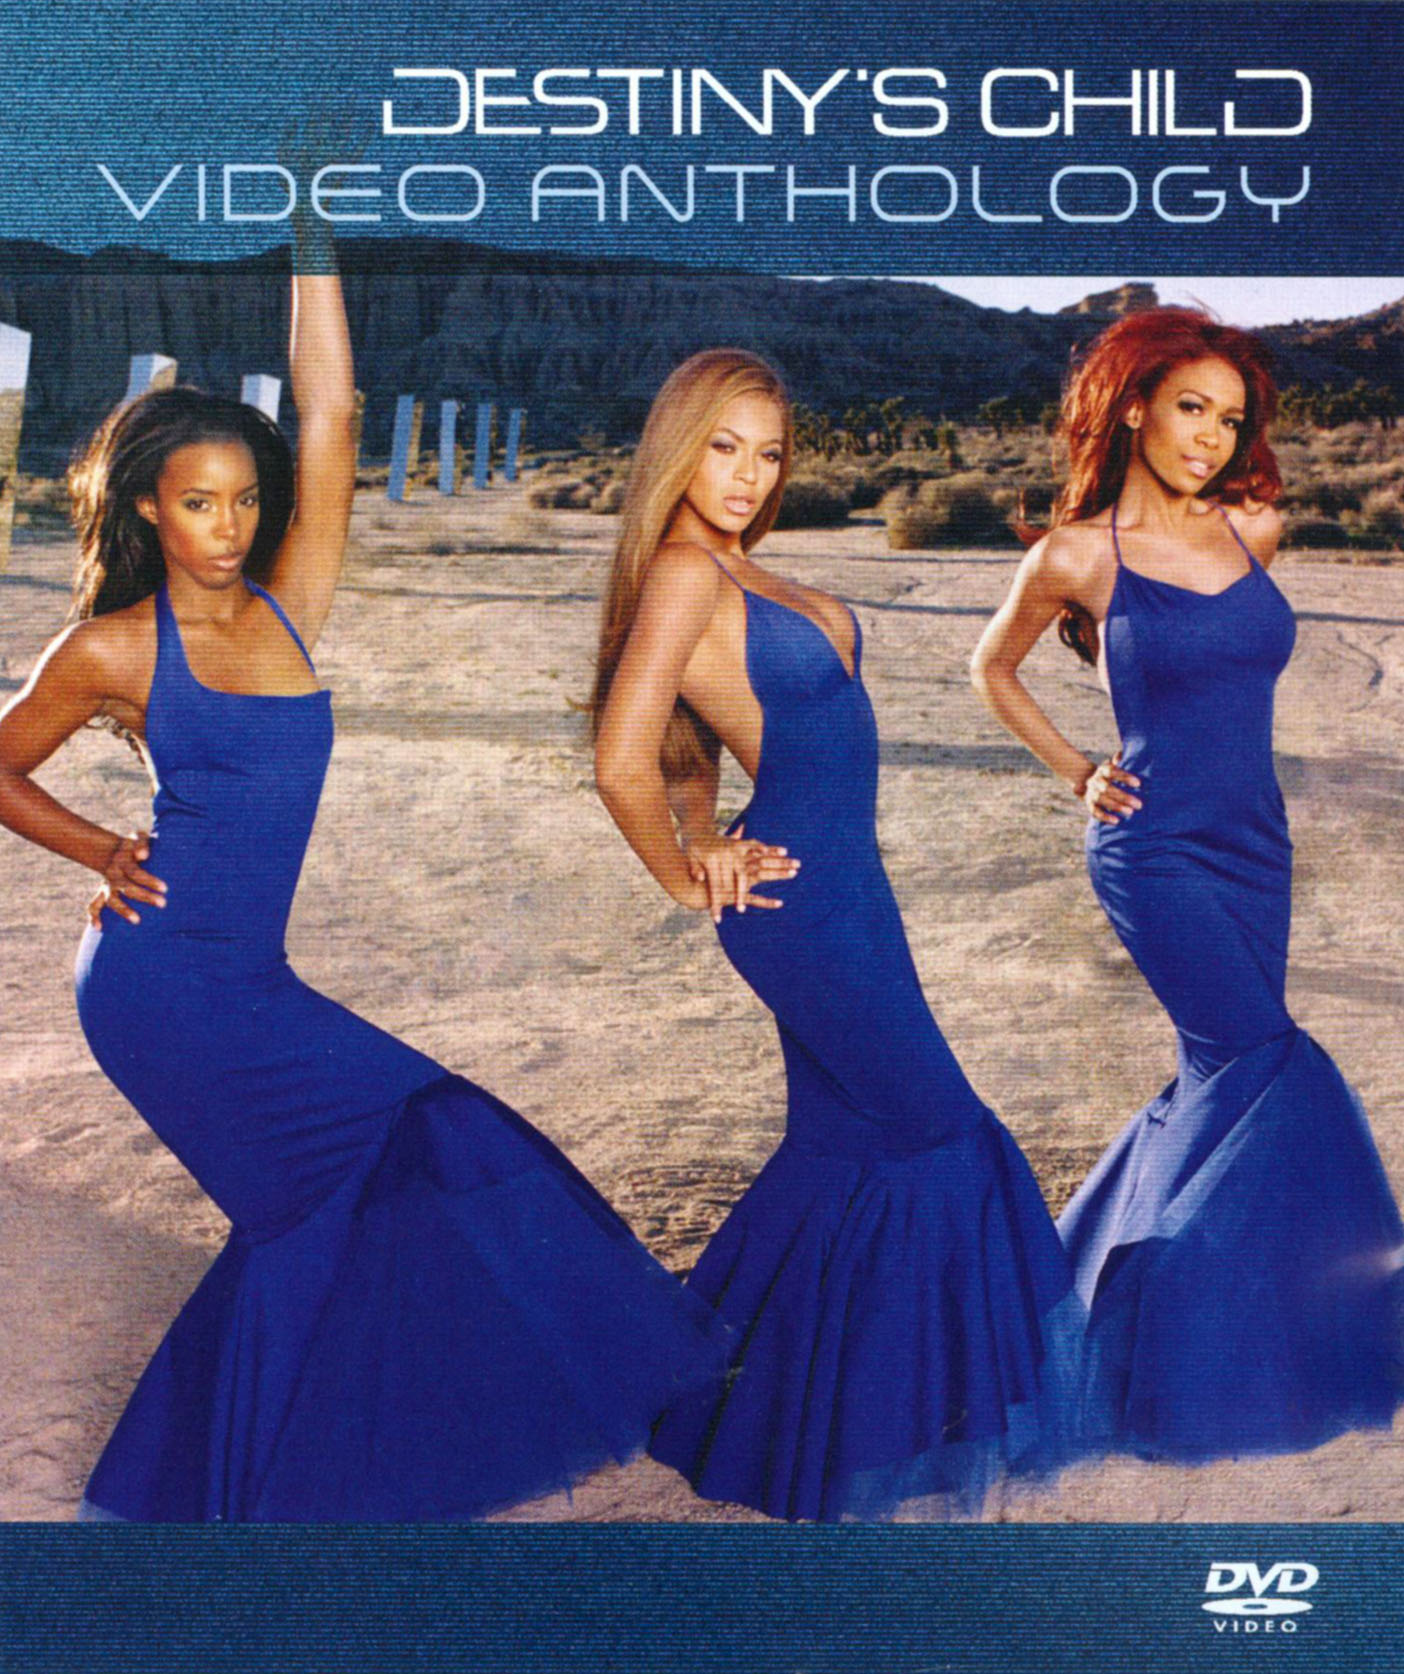 Destiny's Child: The Video Anthology